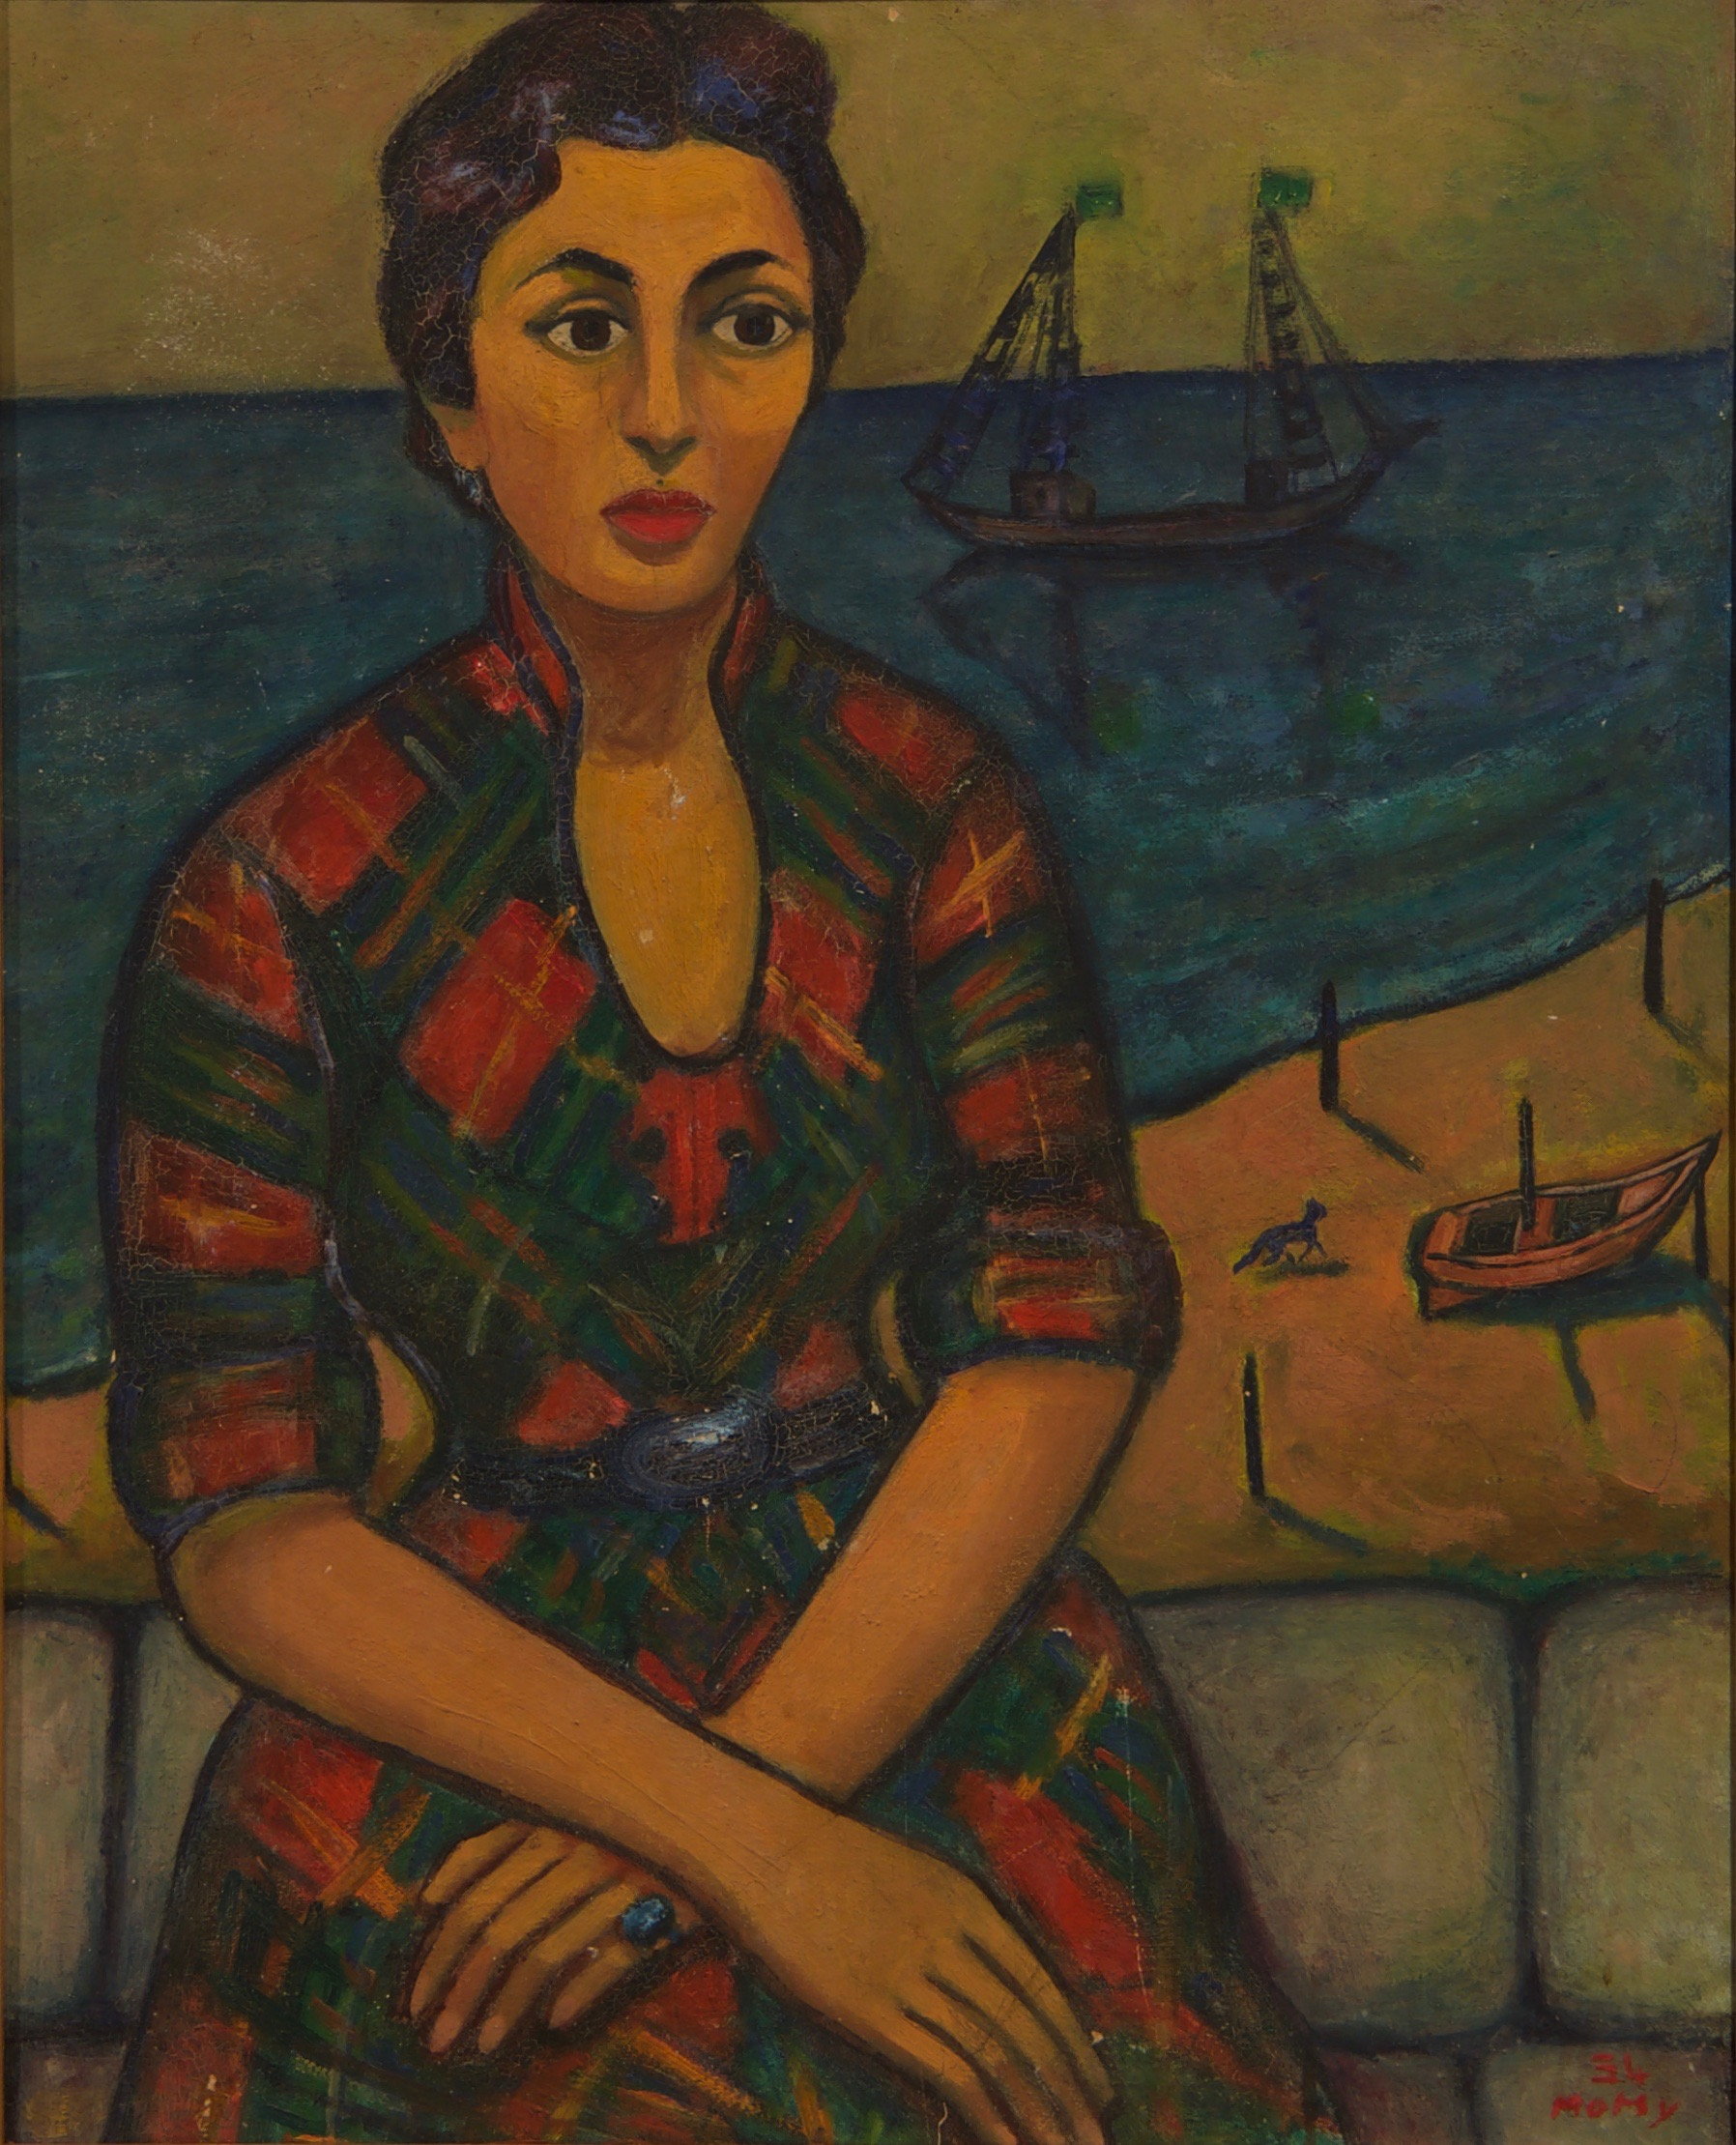 Ahmed-Morsi-Untitled-(Portrait-of-Madam-Traboulsi-II)-1954.jpg